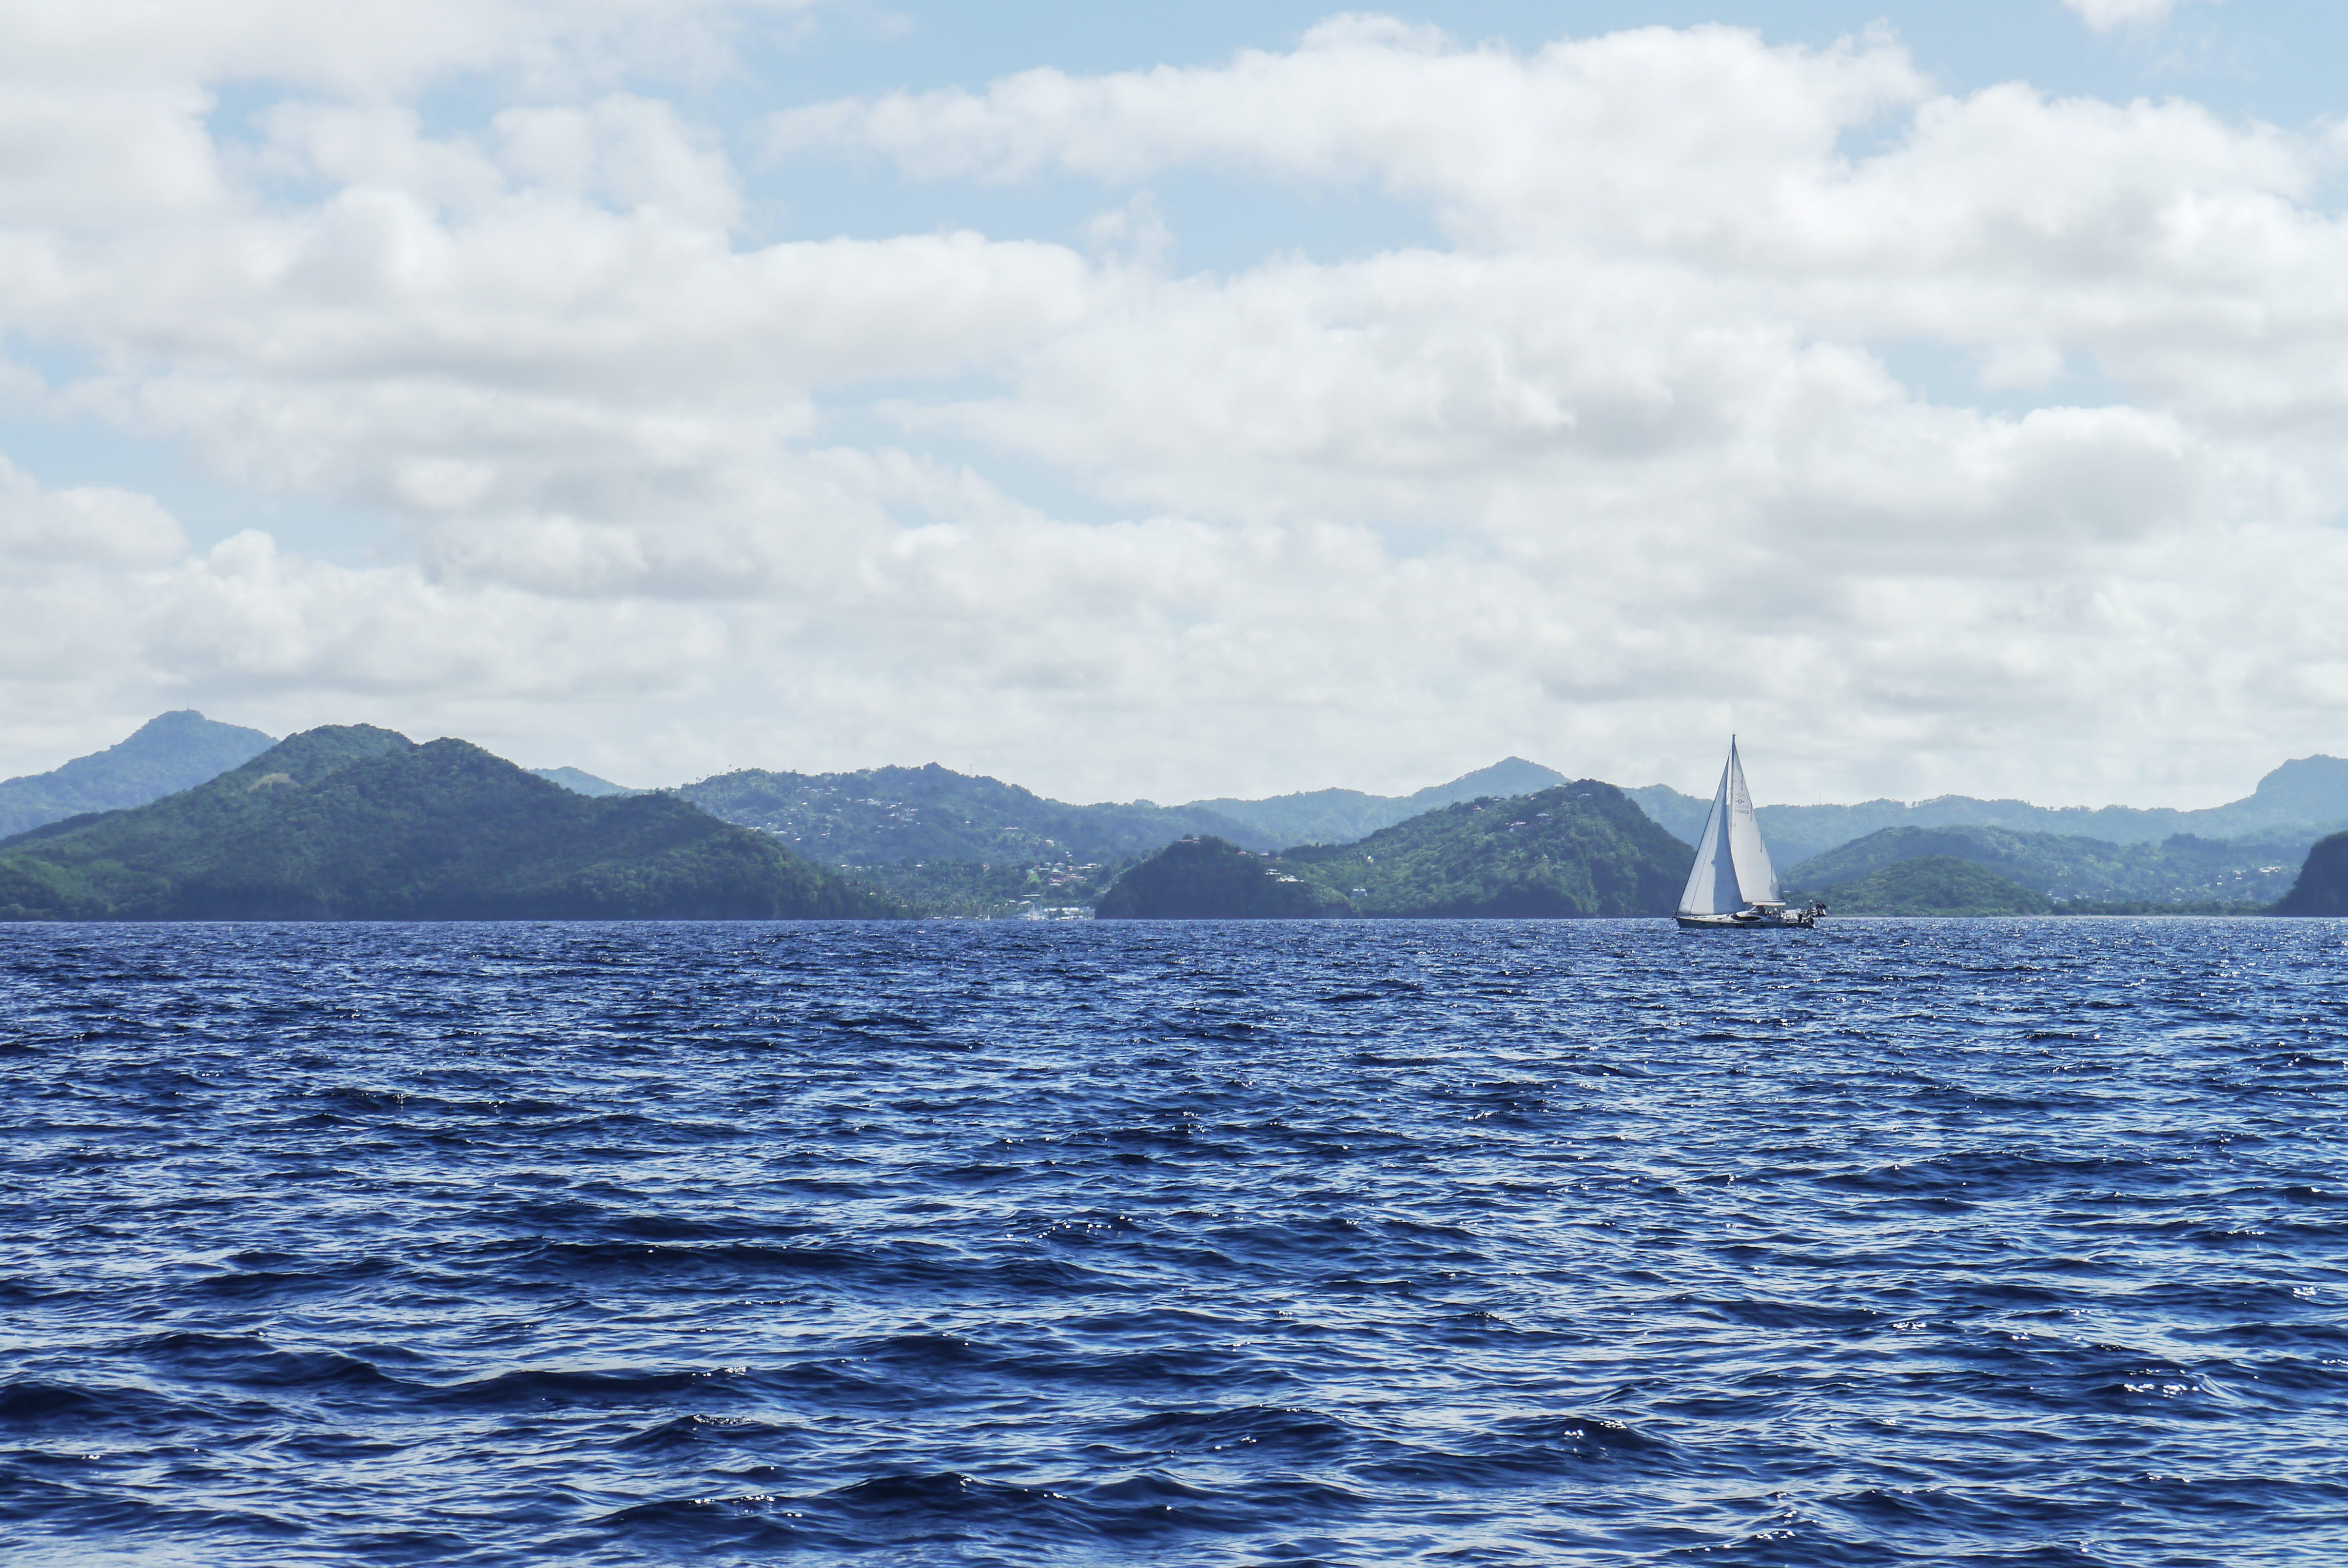 White Boat With Sail on Body of Water